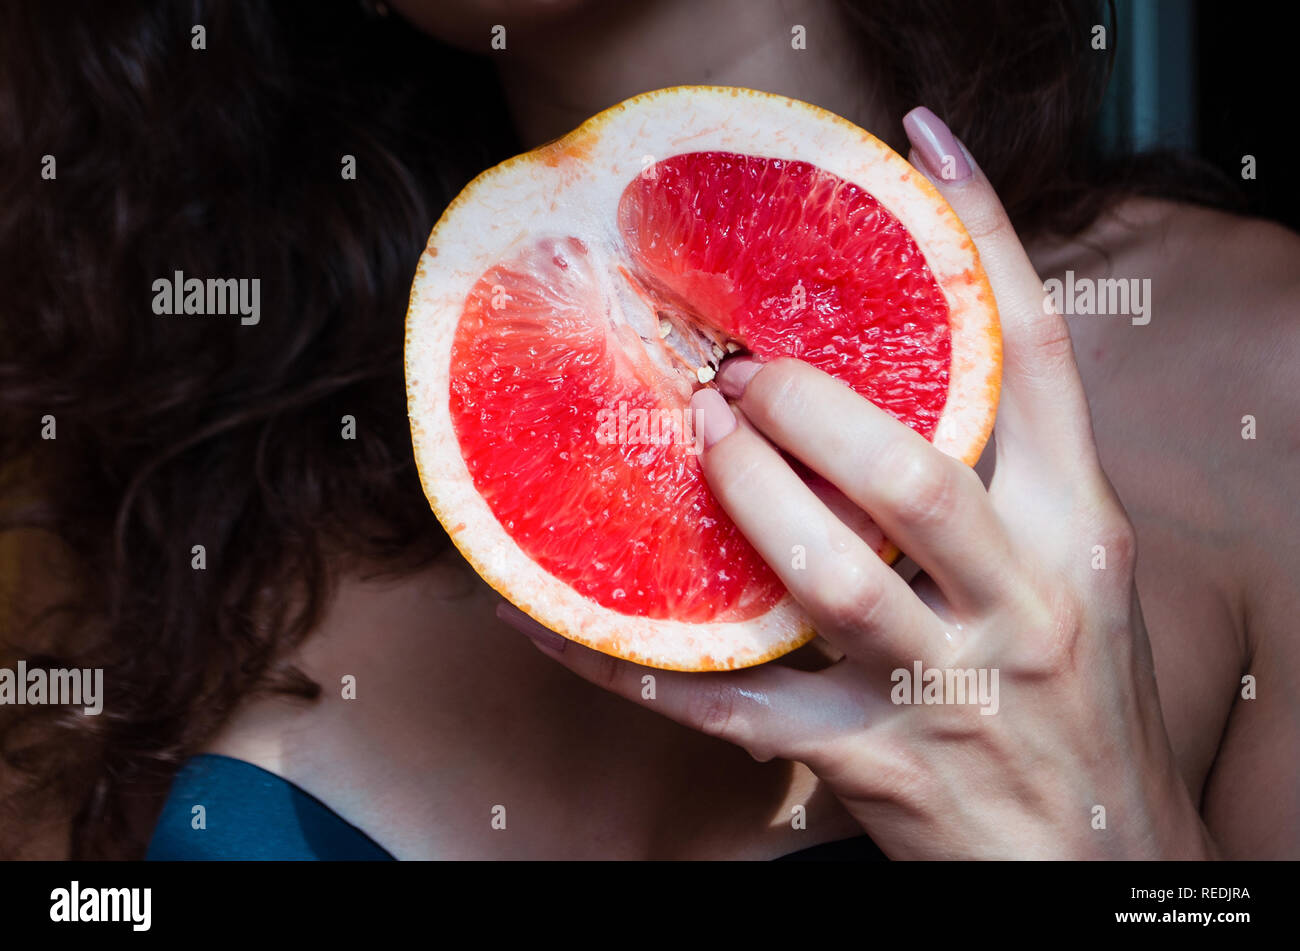 A woman is holding a grapefruit by her body. Concept masturbation Stock Photo